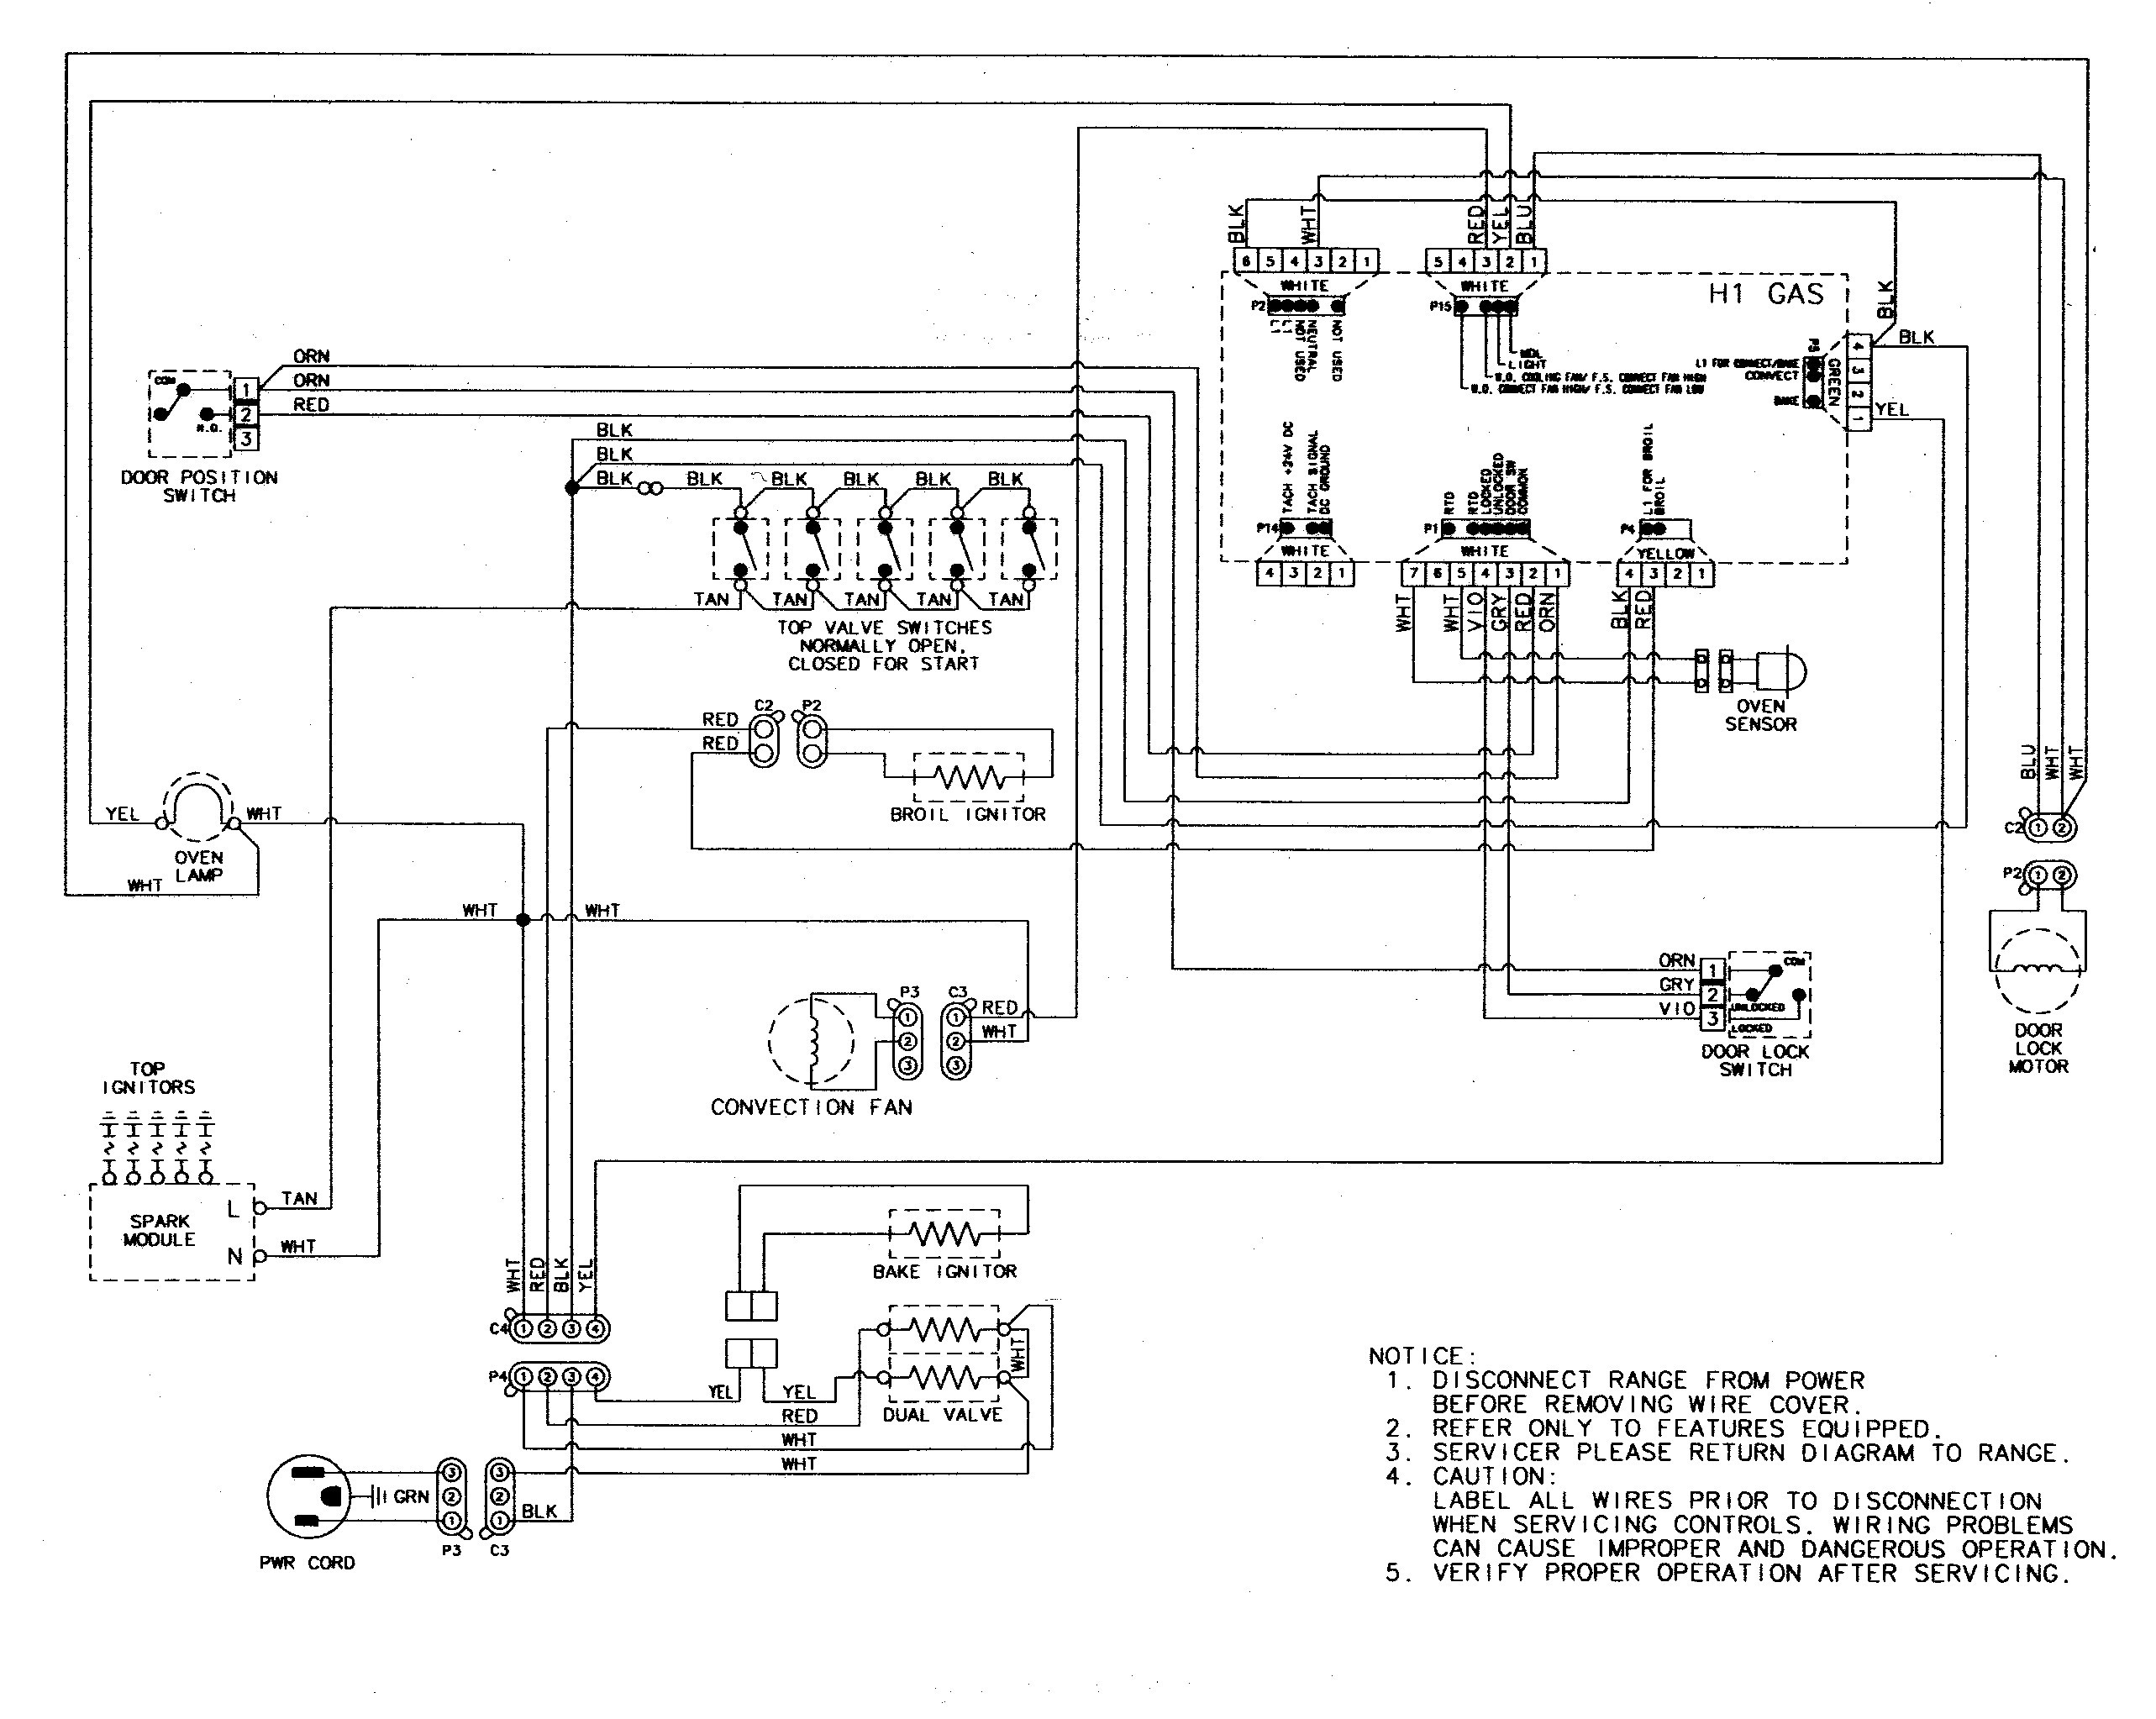 Diagram Oven Wiring Ge Jbp68hd1cc Xl 1200 Heat Pump Wiring Diagram Schematic For Wiring Diagram Schematics